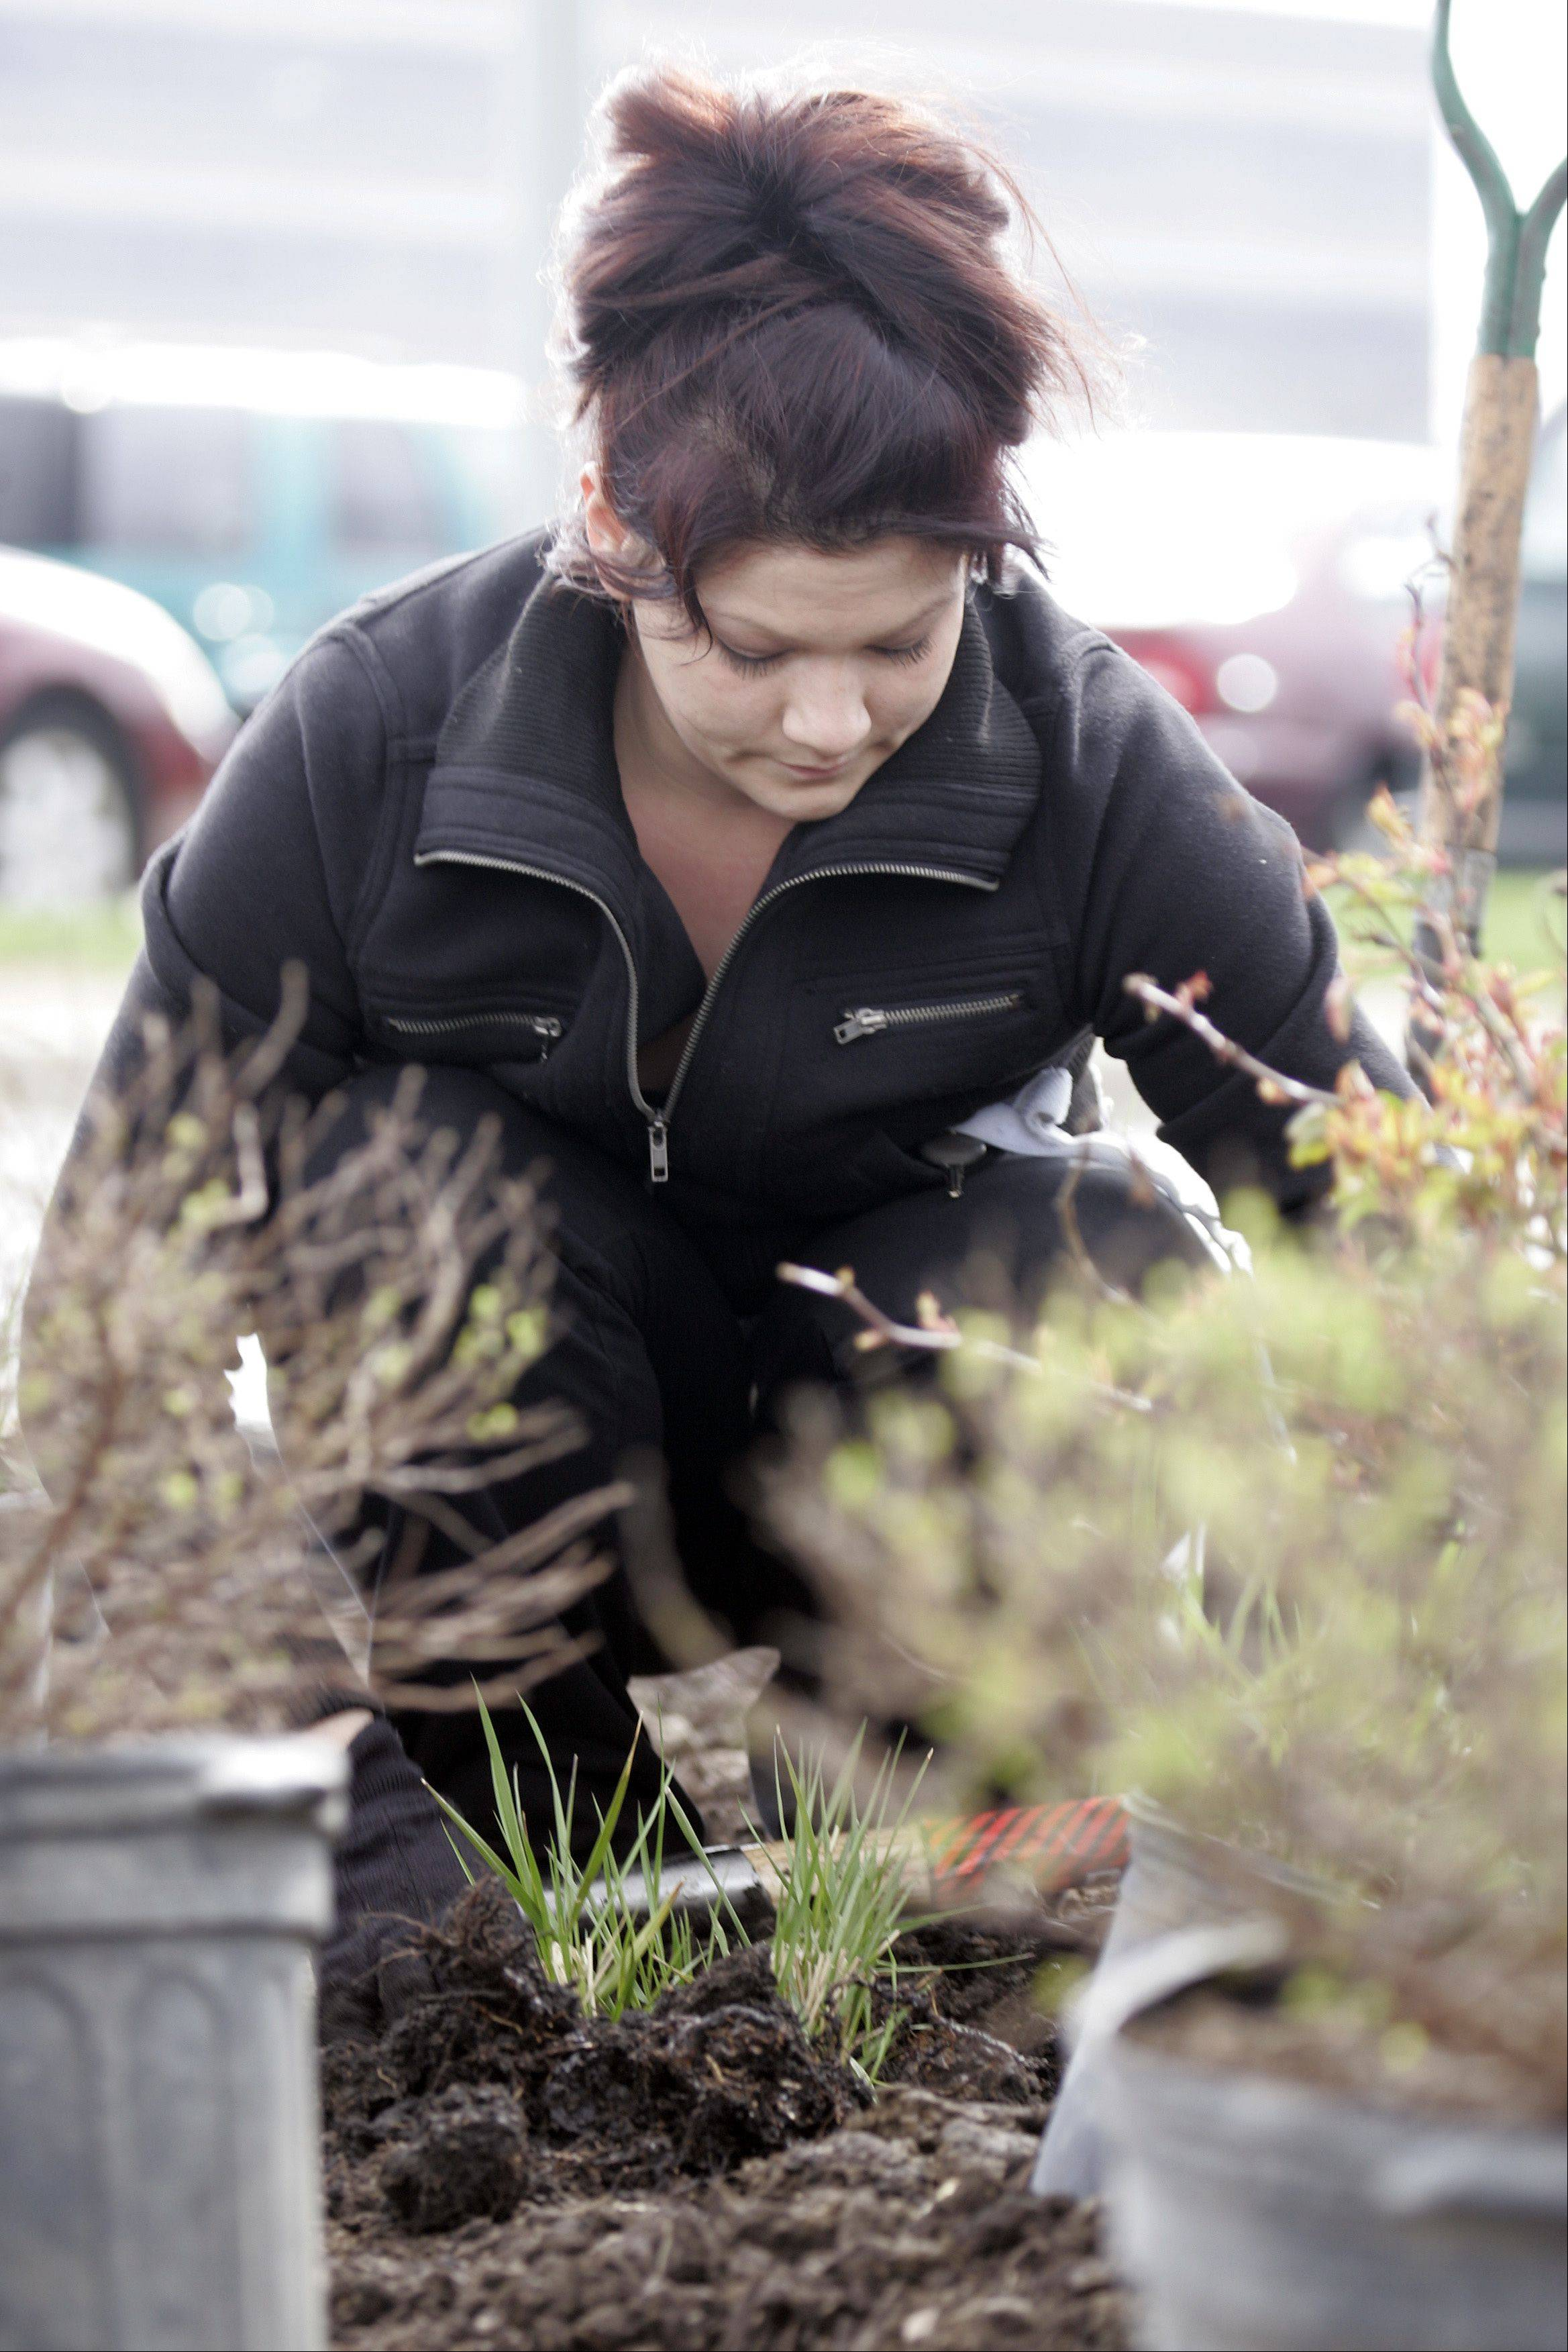 Cheyenne Meadows of John B. Sanfilippo and Son, INC. plants perennials on the Fisher Nut property in Elgin Thursday. More than 100 employees took time out of their day to help plant and give back to the environment. This is the fourth year that the Elgin company has observed Earth day this way.